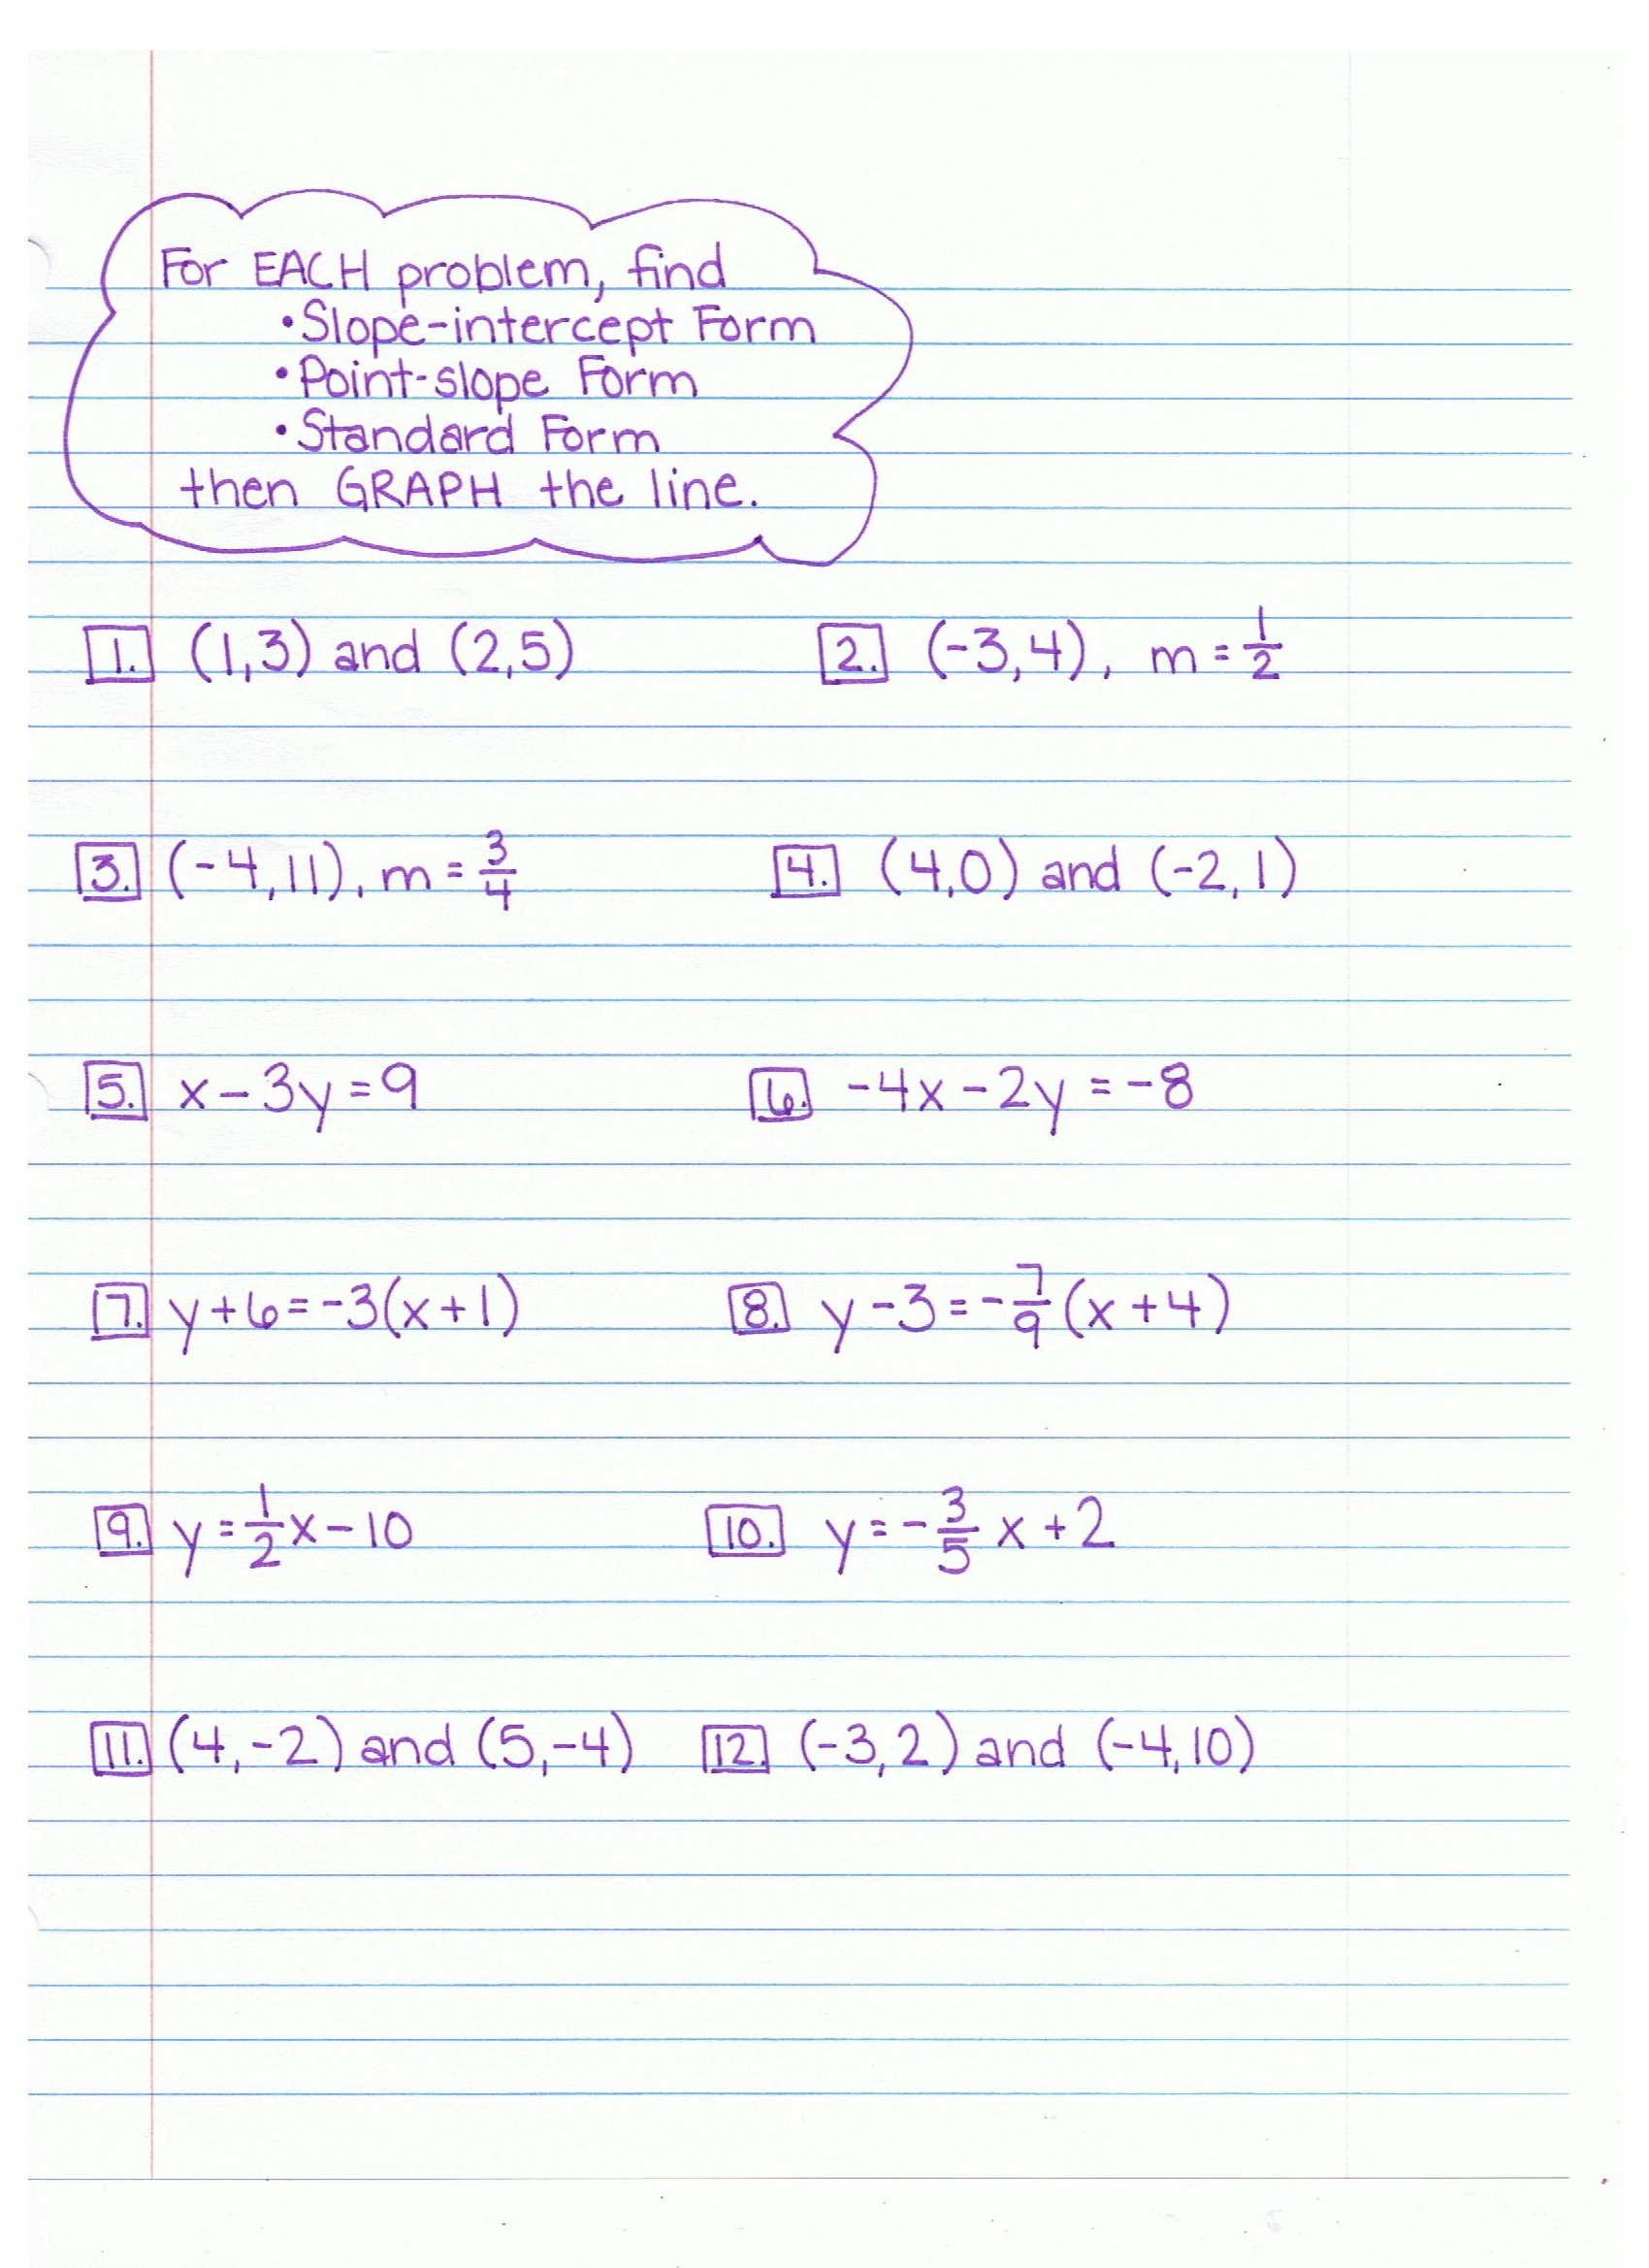 Slope intercept form worksheet answer key free worksheets library slope intercept form worksheet answer key algebra 1 worksheets linear equations worksheets falaconquin